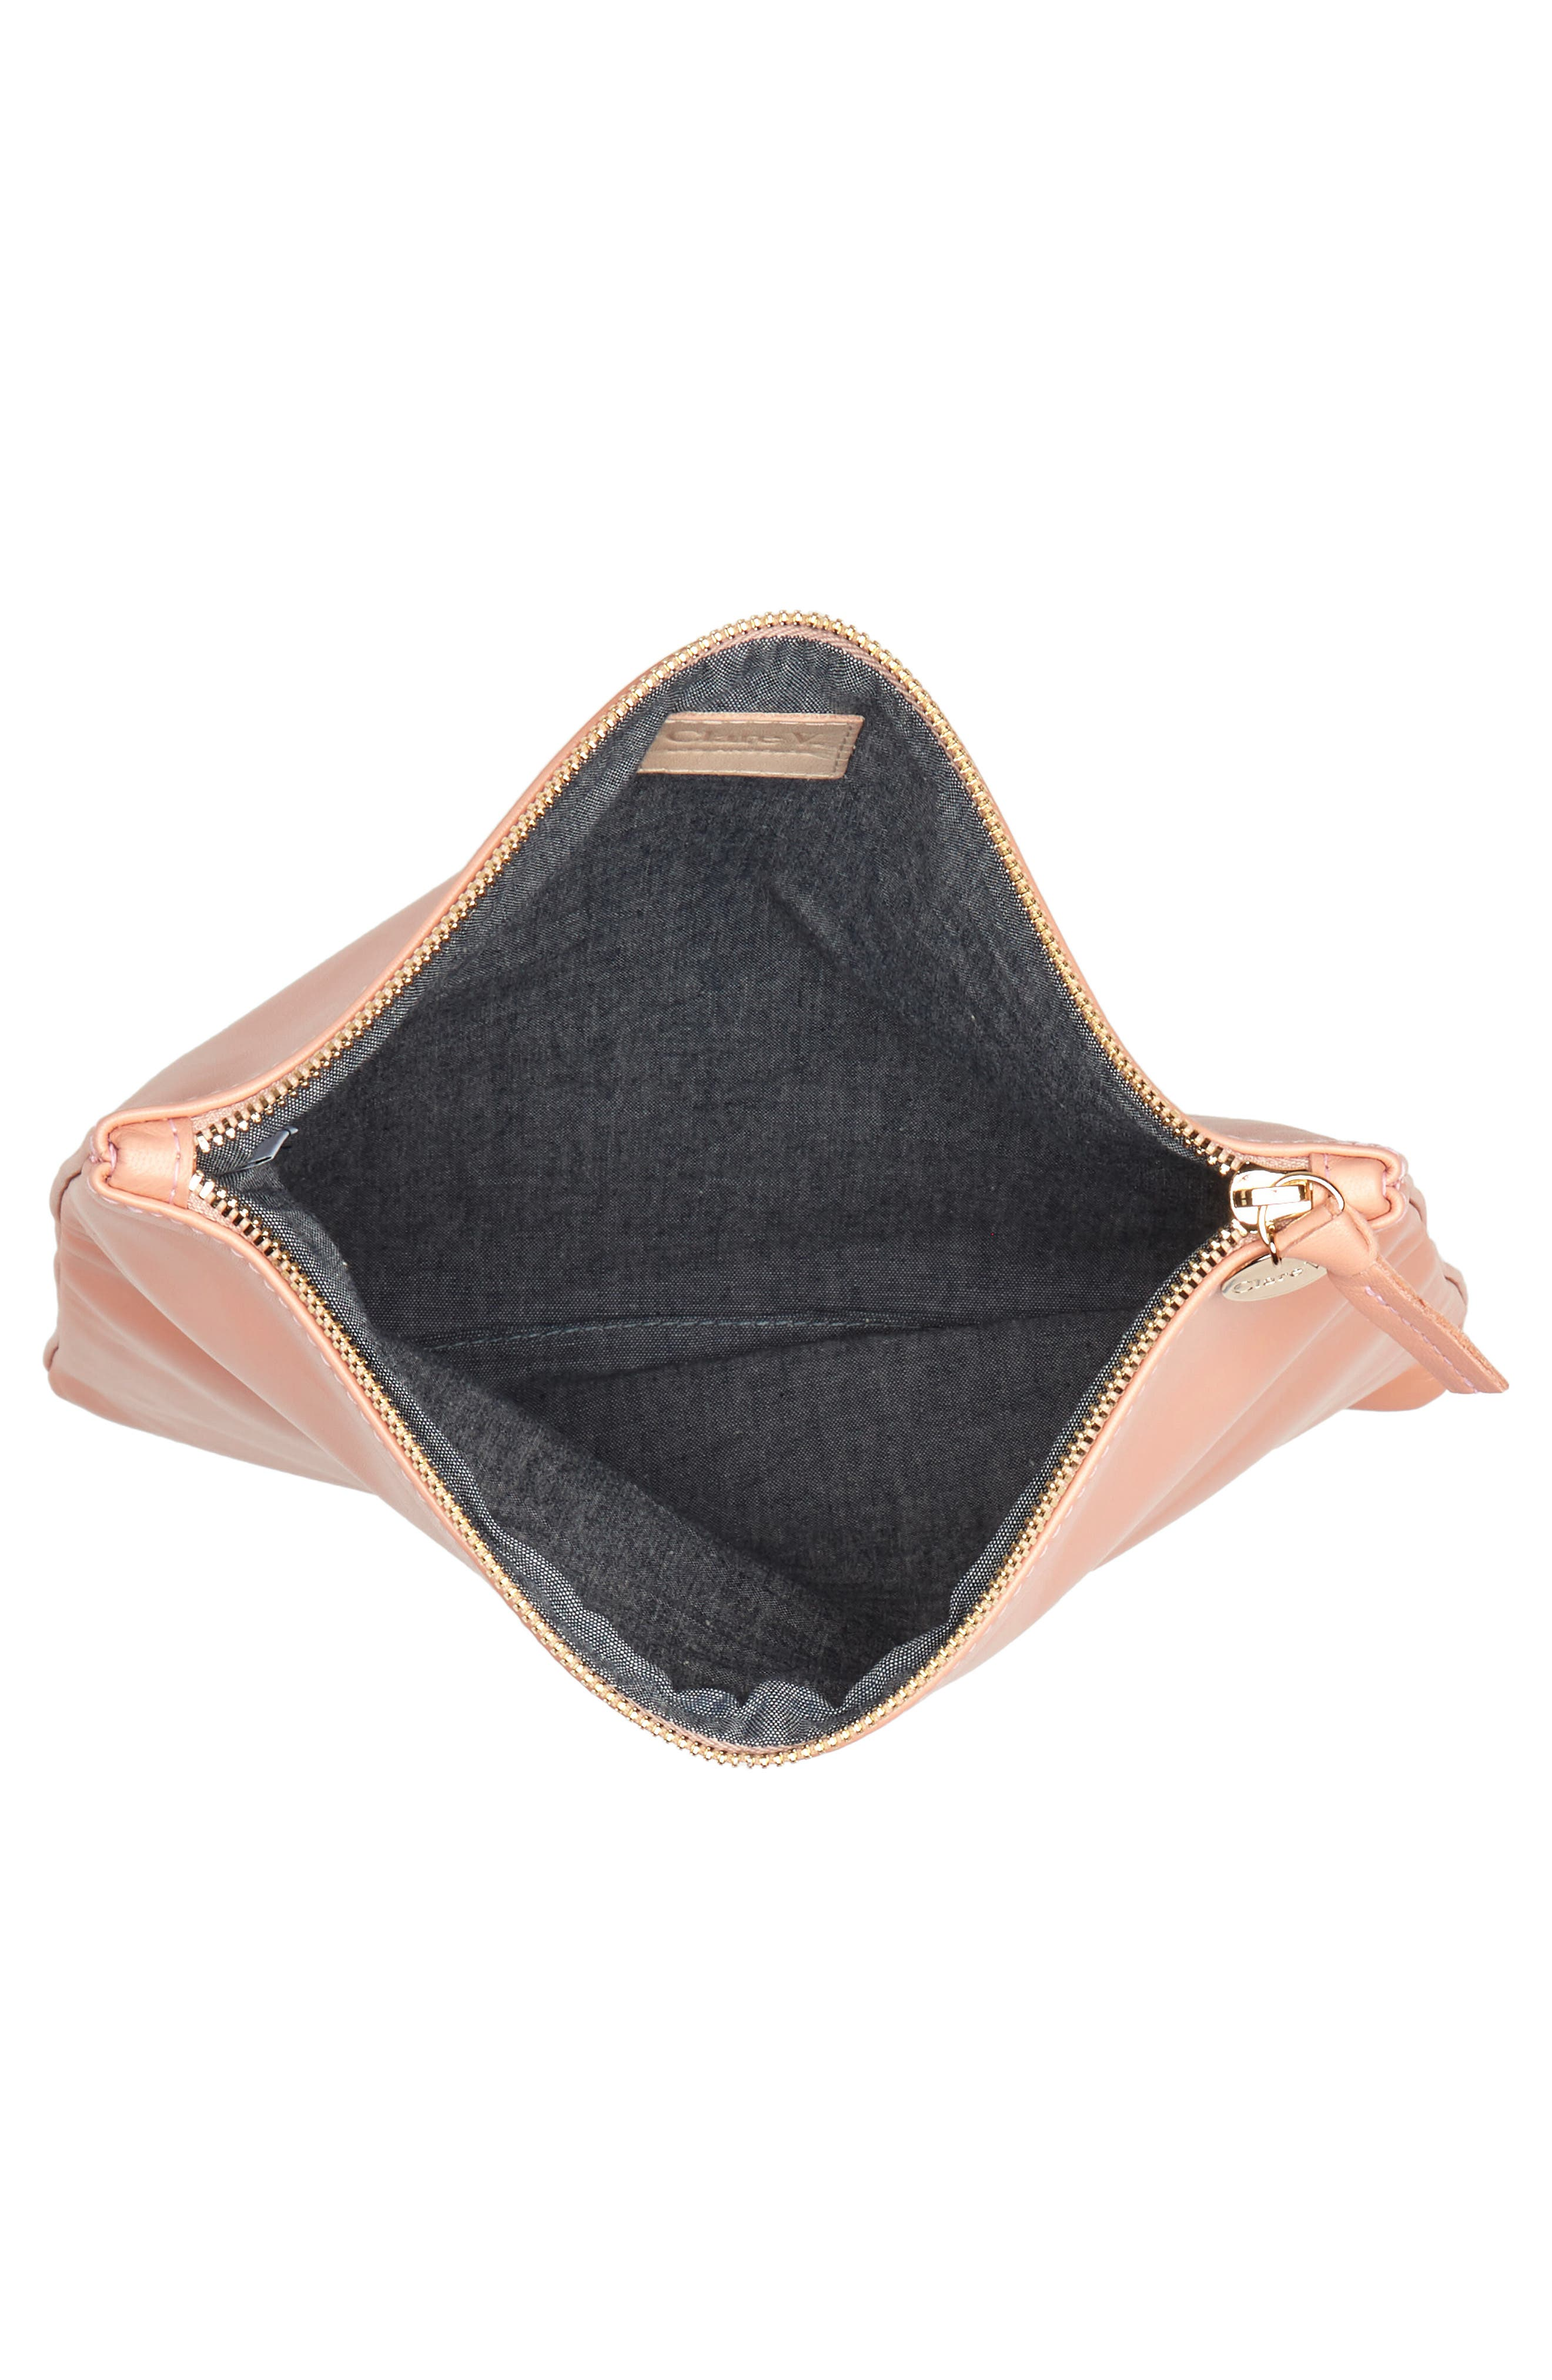 Leather Foldover Clutch,                             Alternate thumbnail 4, color,                             650